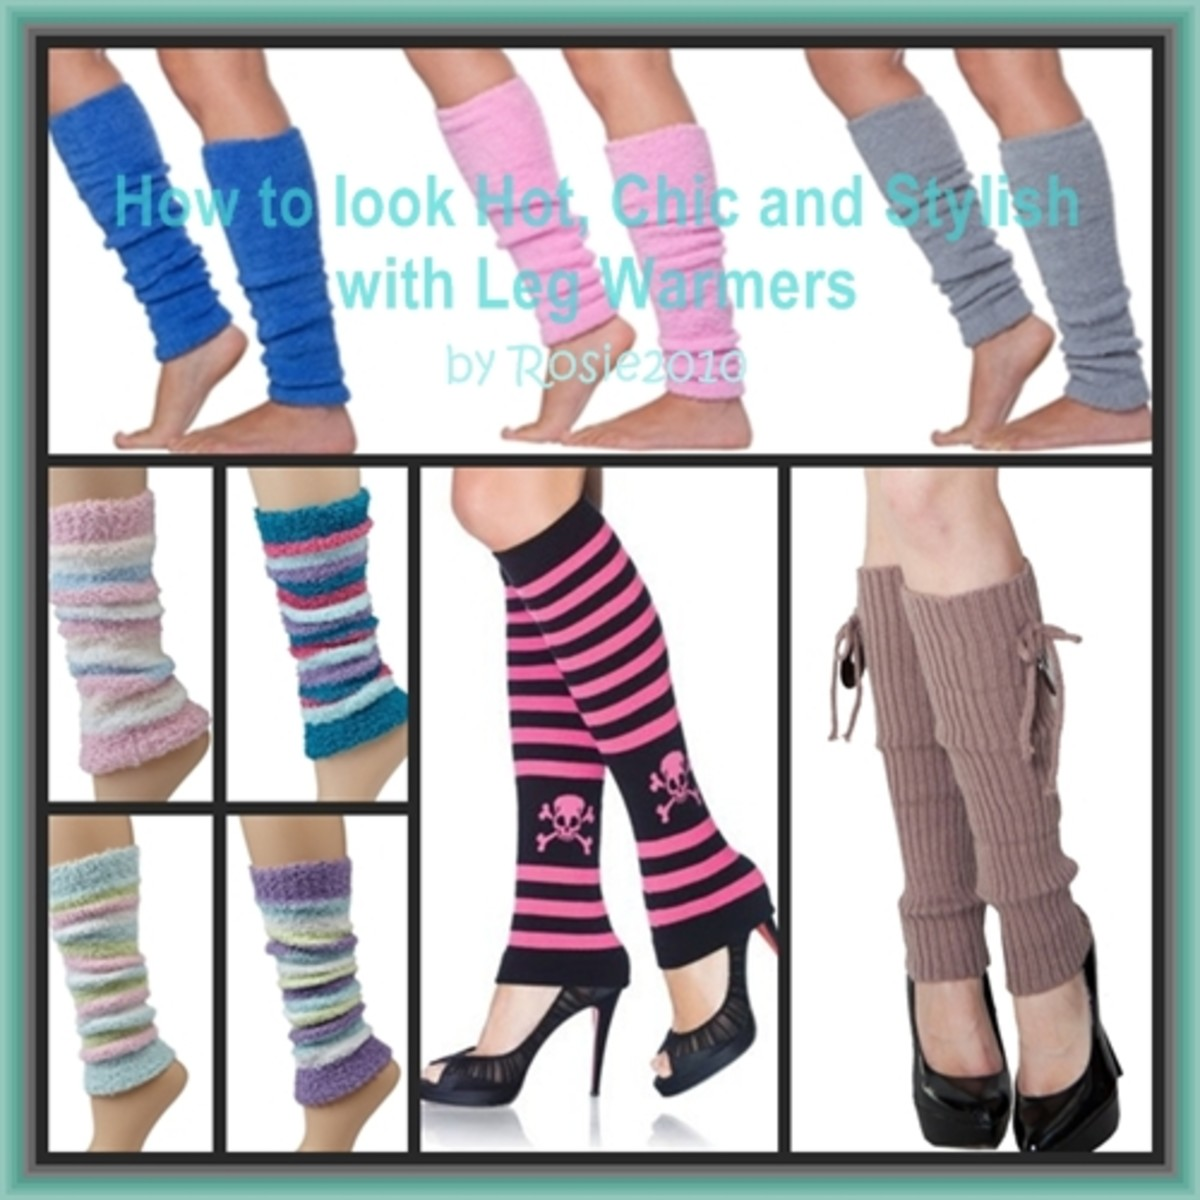 How to Look Hot, Chic and Stylish with Leg Warmers - Fashion Accessories